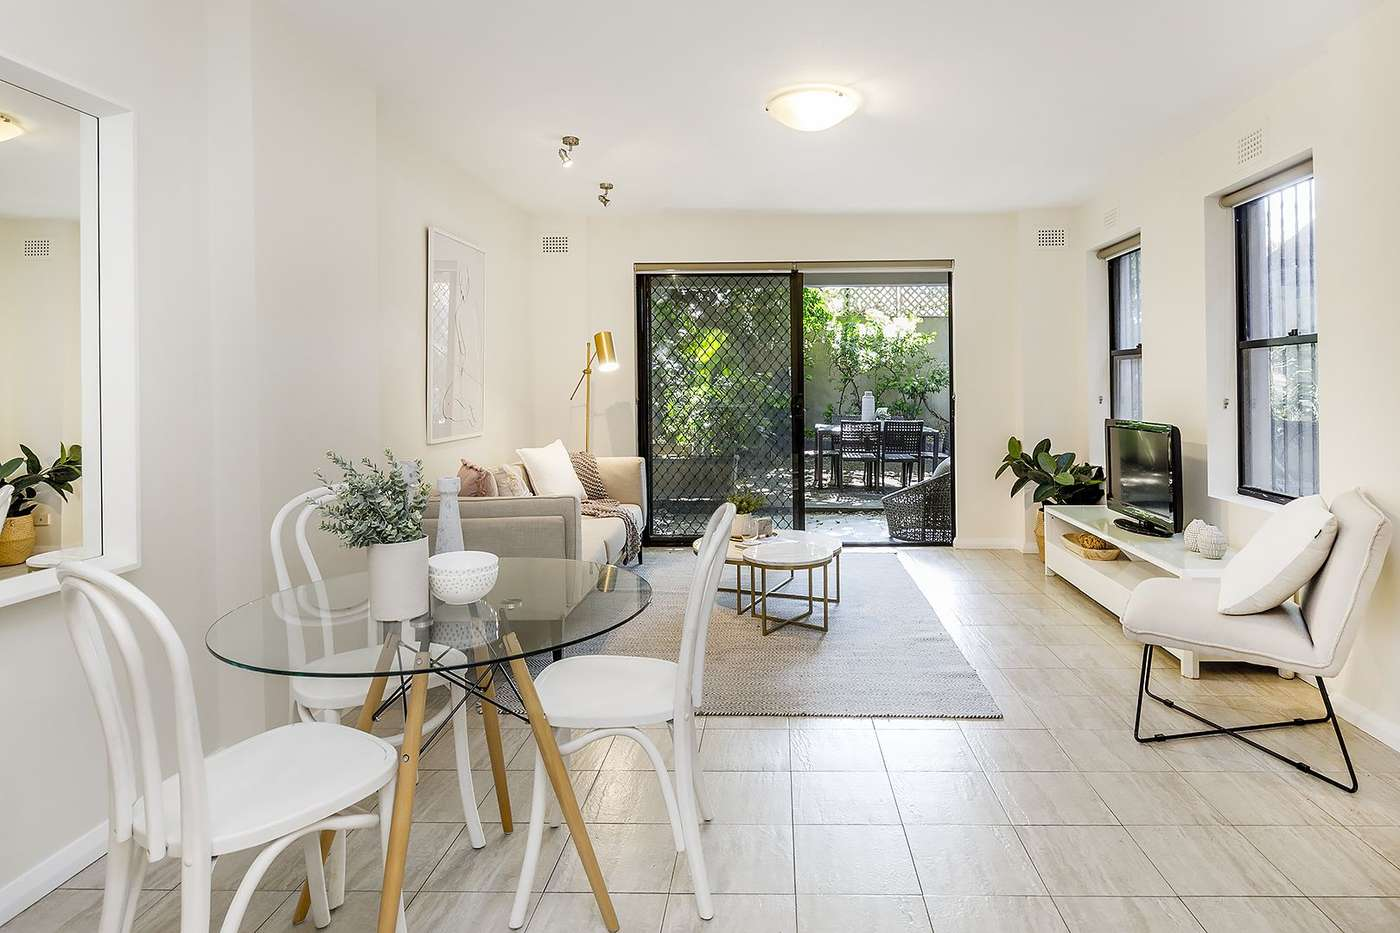 Main view of Homely apartment listing, 2/655 South Dowling St, Surry Hills, NSW 2010